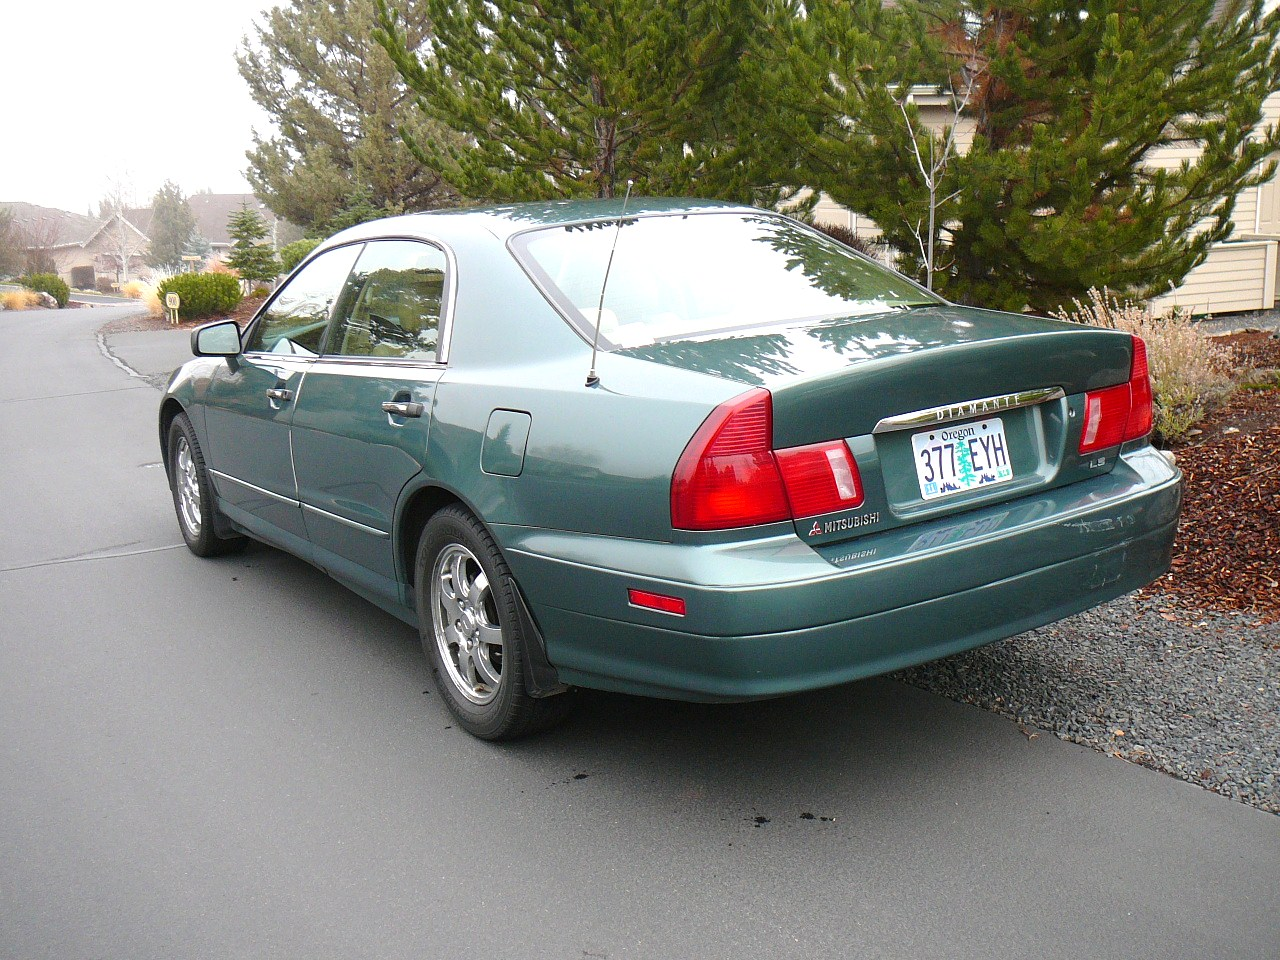 Picture of 1998 Mitsubishi Diamante 4 Dr LS Sedan